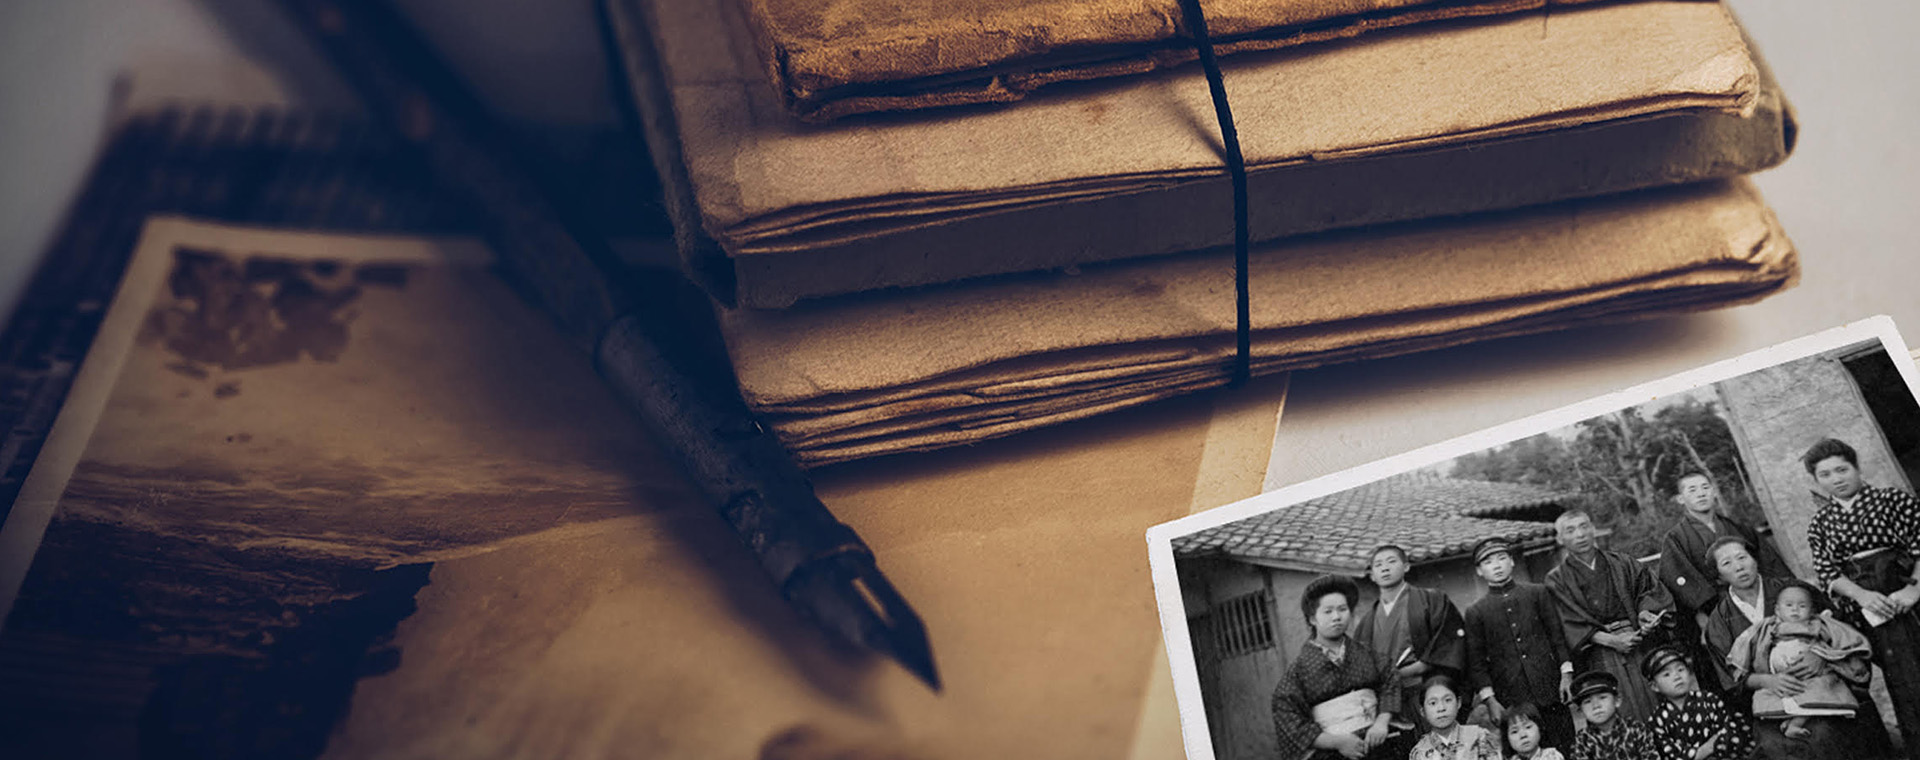 A bundle of sepia-toned documents on a desktop surface with a sepia-toned album and black-and-white photo of people